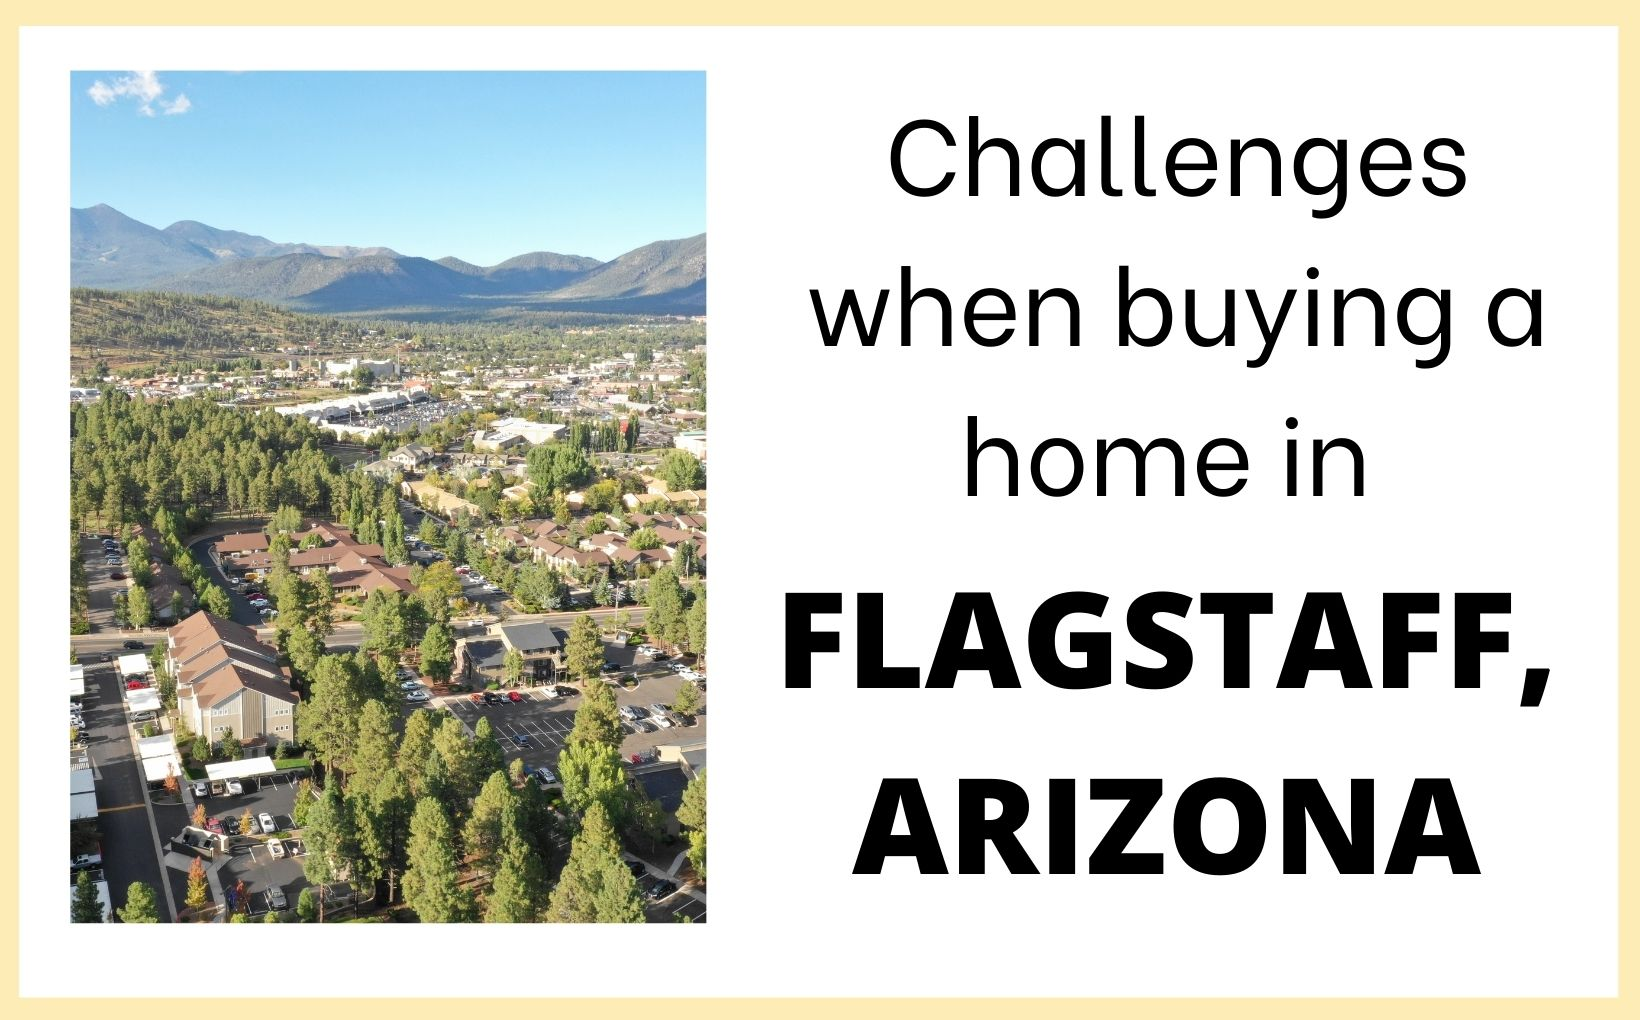 Challenges when buying a home in Flagstaff, Az feature image